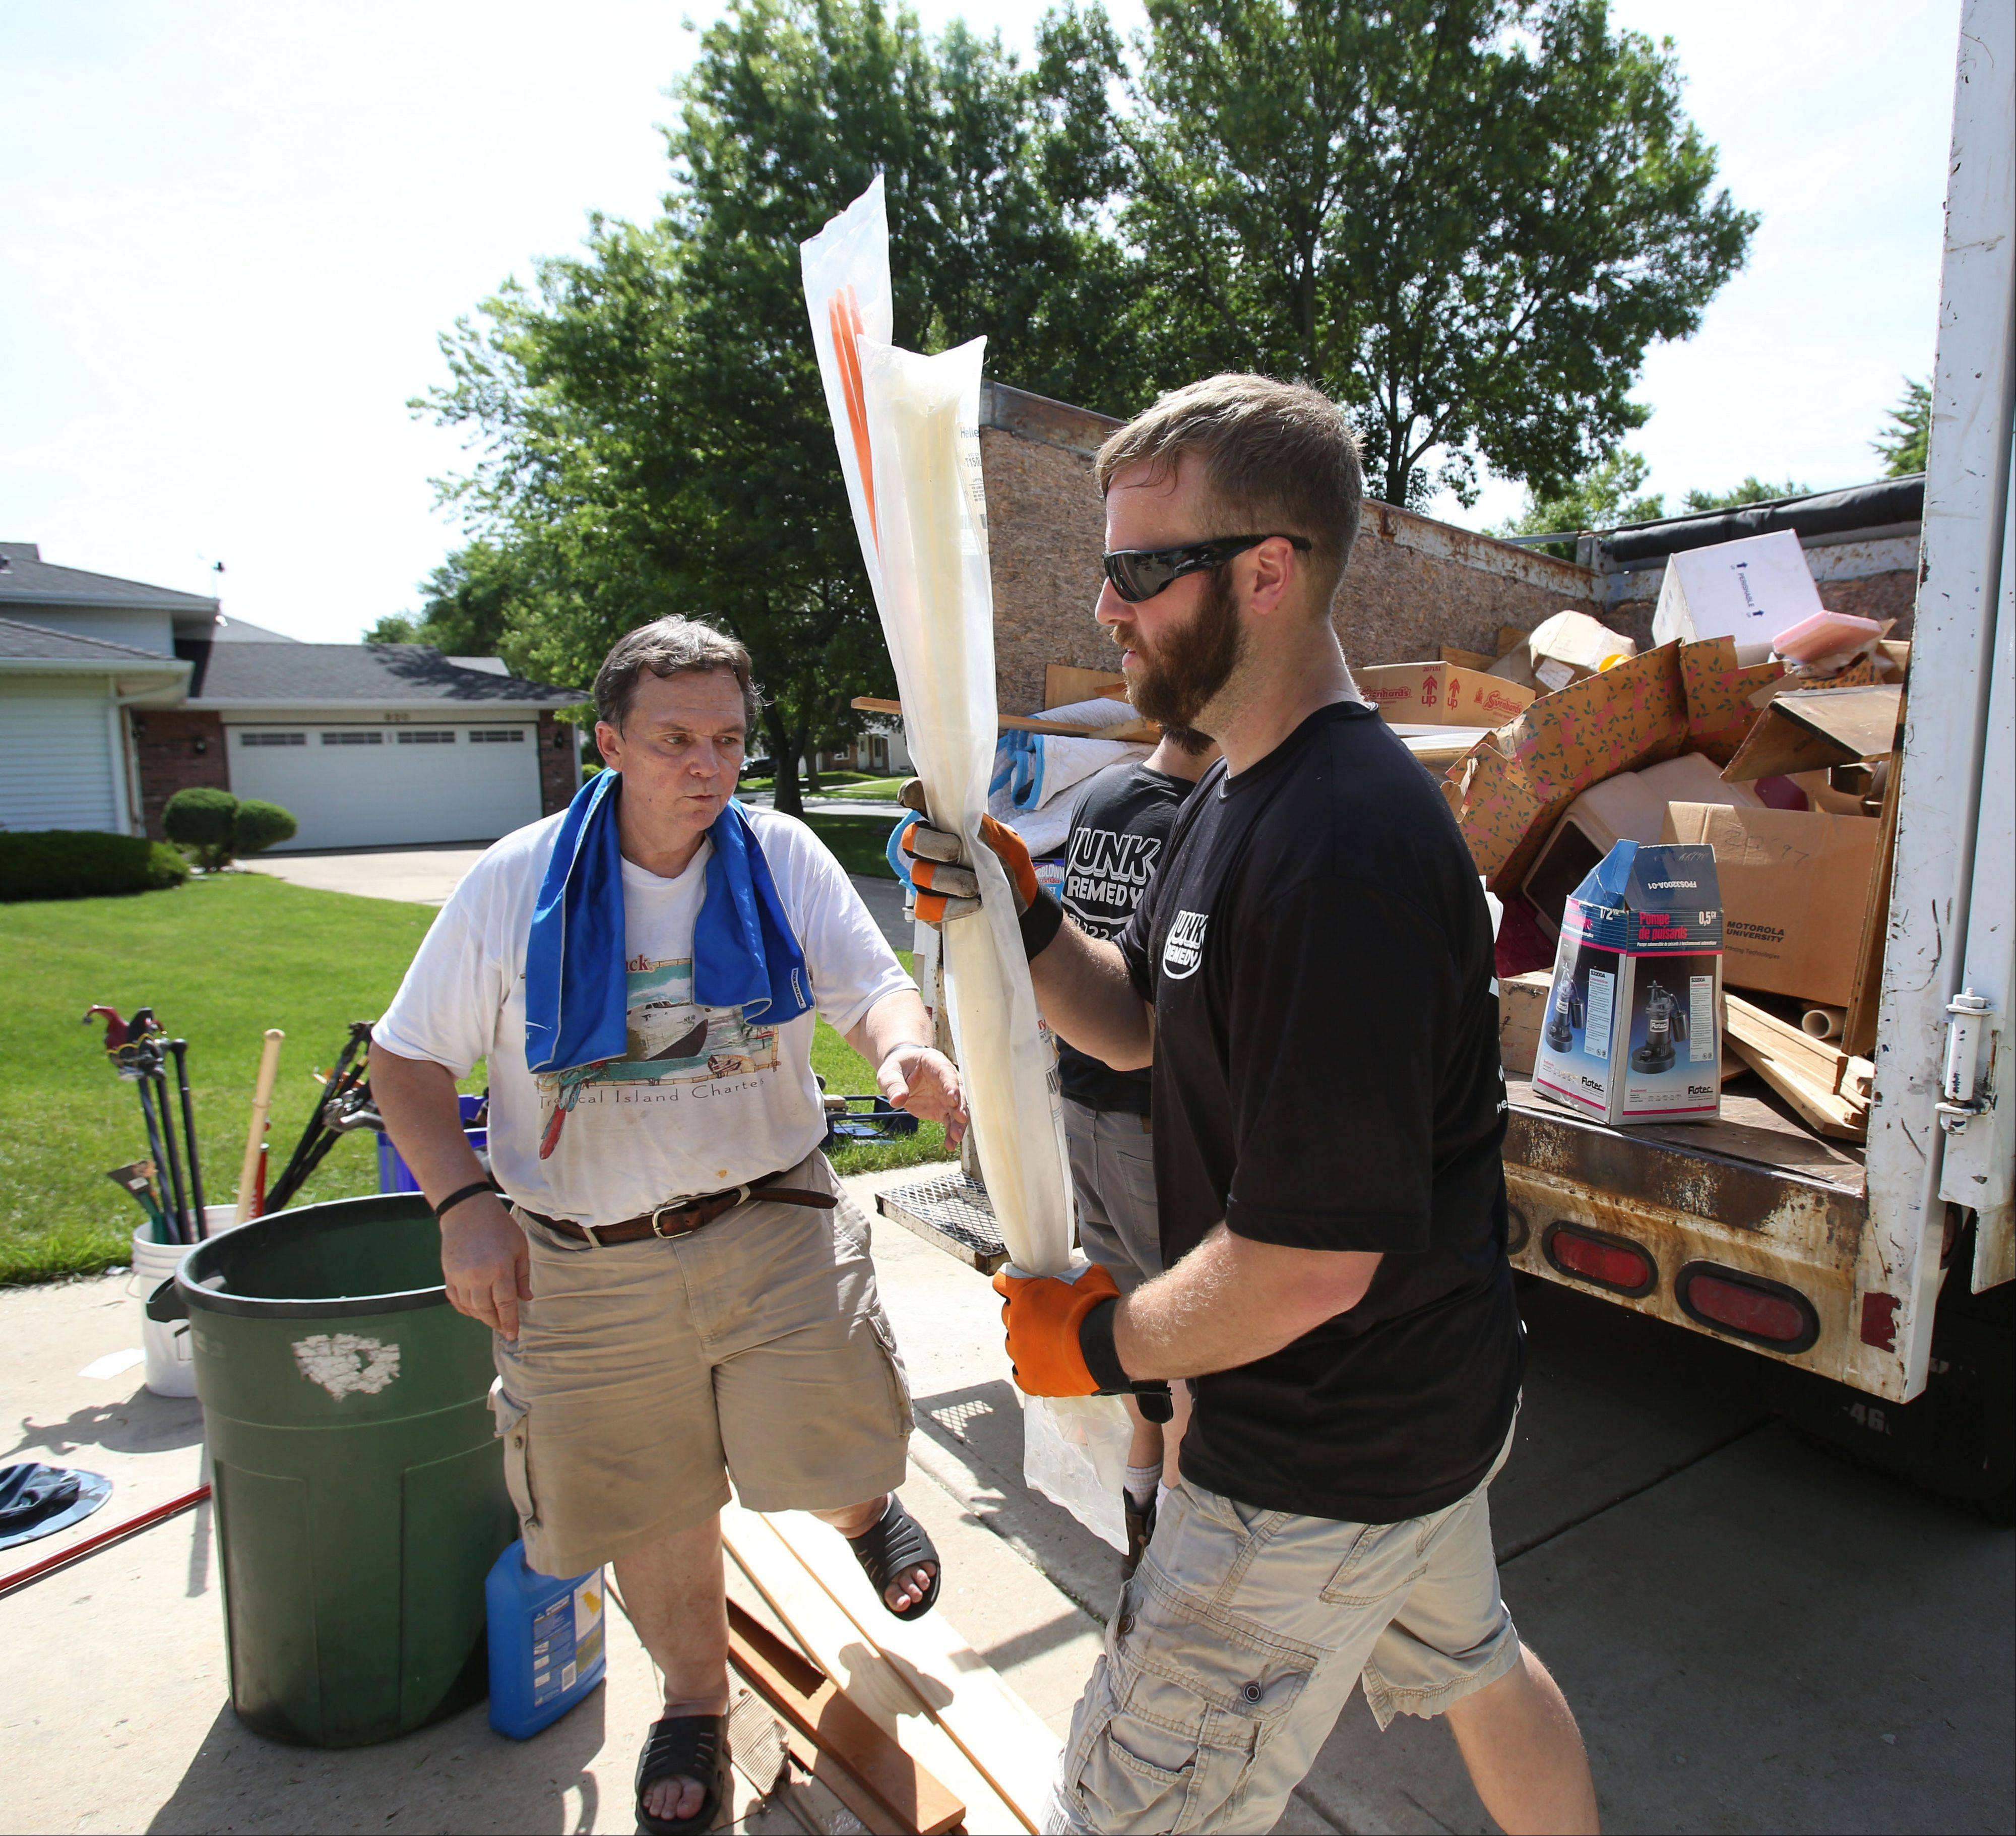 Exercising his veto rights, garage owner Bob DeBellis has Junk Remedy's Adam Brehmer, right, return an item DeBellis isn't ready to see go from his once-cramped garage.